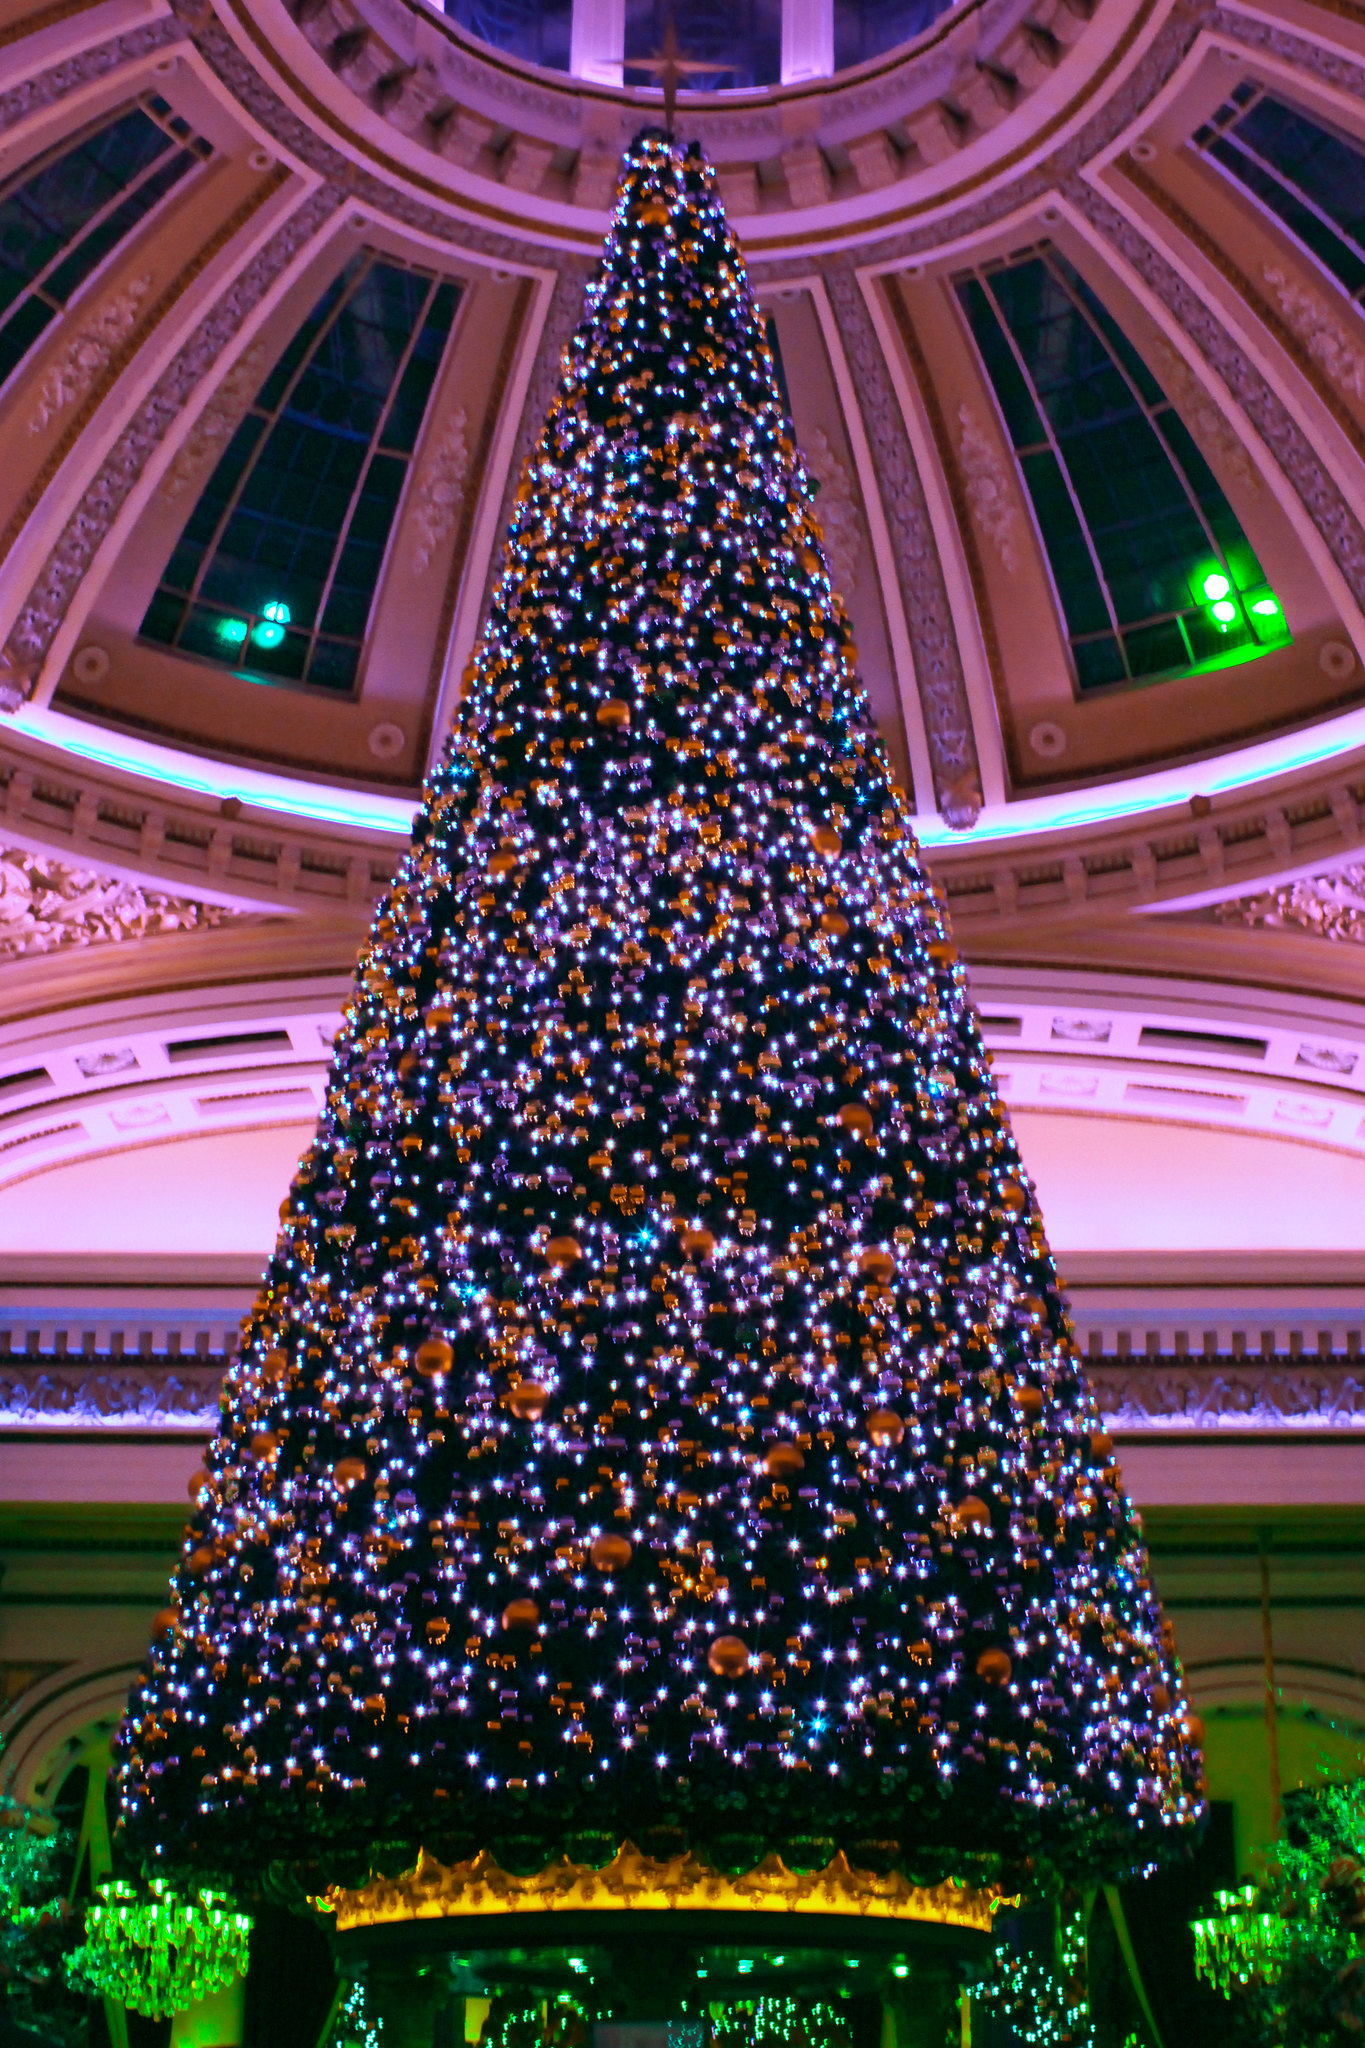 Christmas The Dome Edinburgh cocktails lifestyle blogger UK